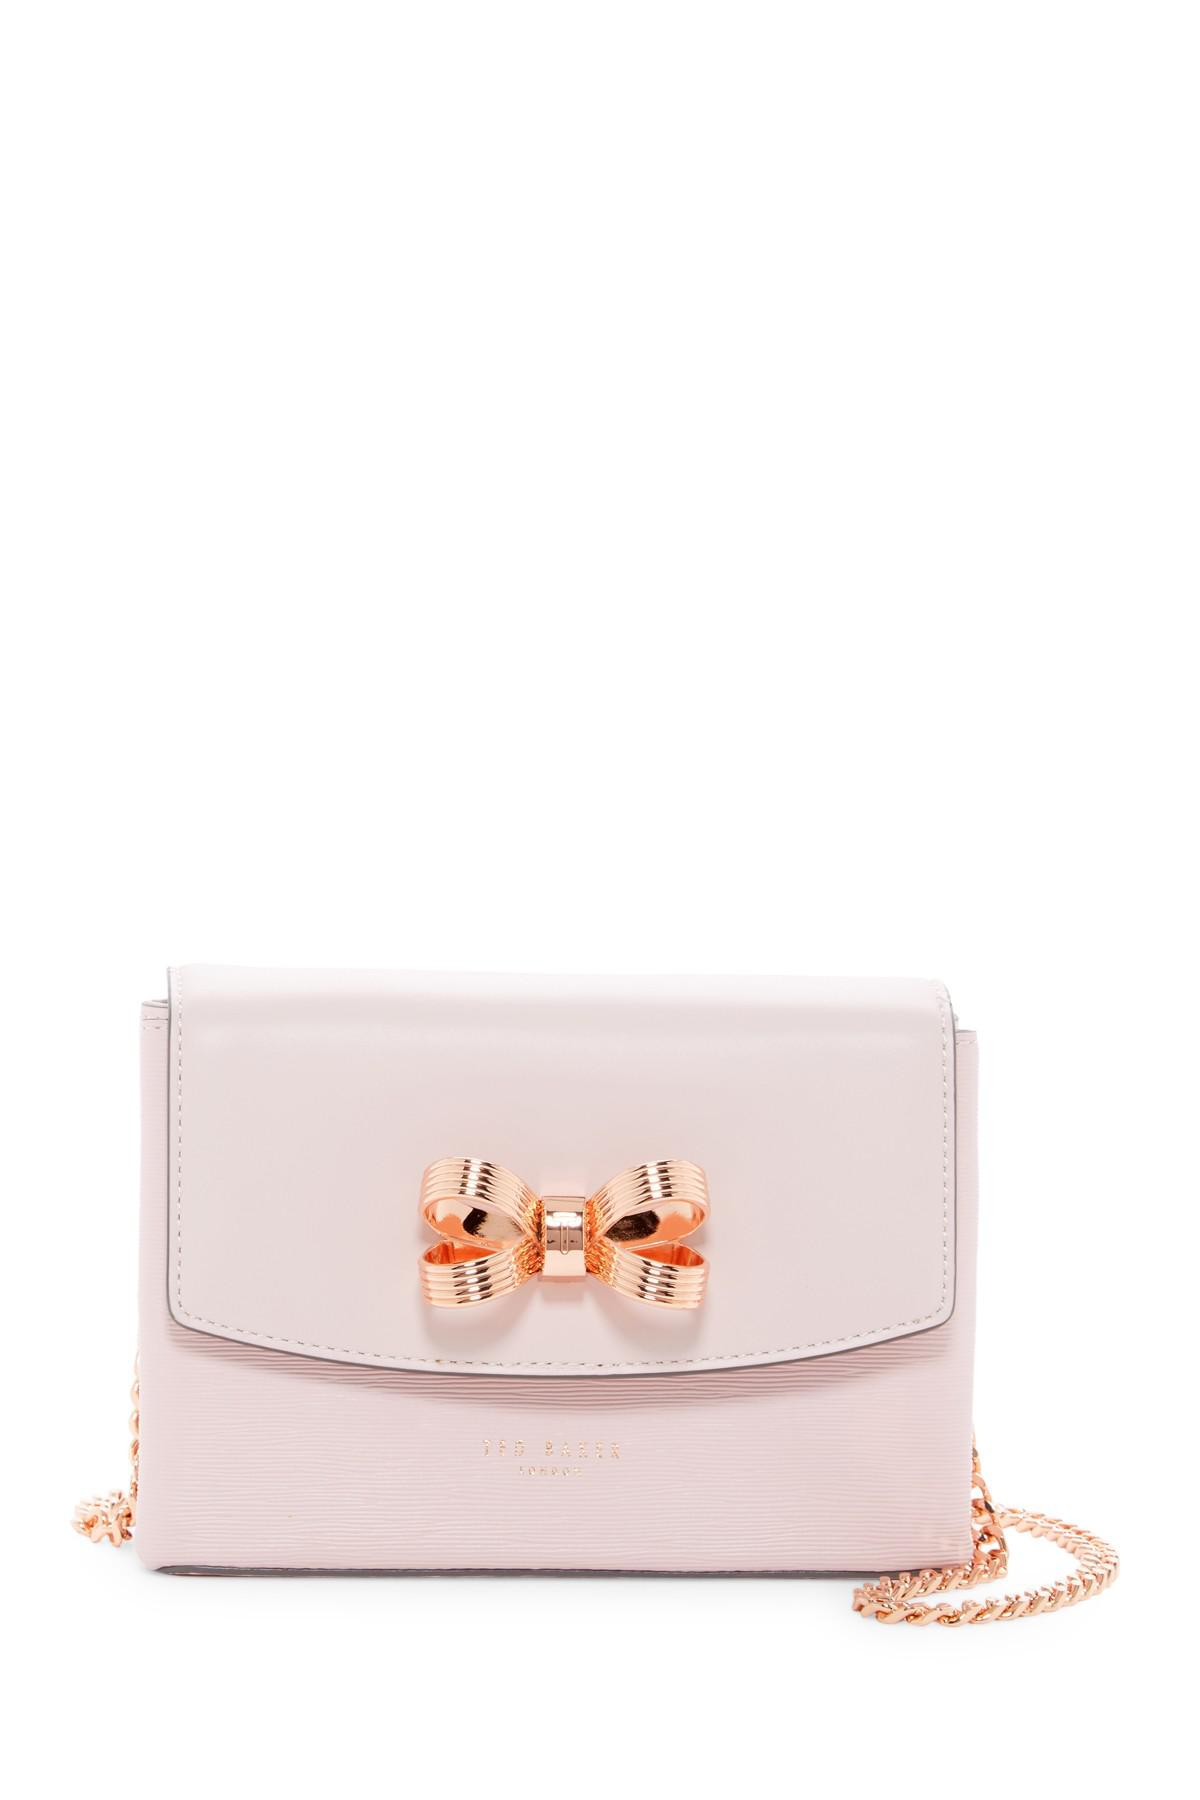 d6651870aeedf Lyst - Ted Baker Leorr Looped Bow Micro Leather Crossbody Bag in Pink